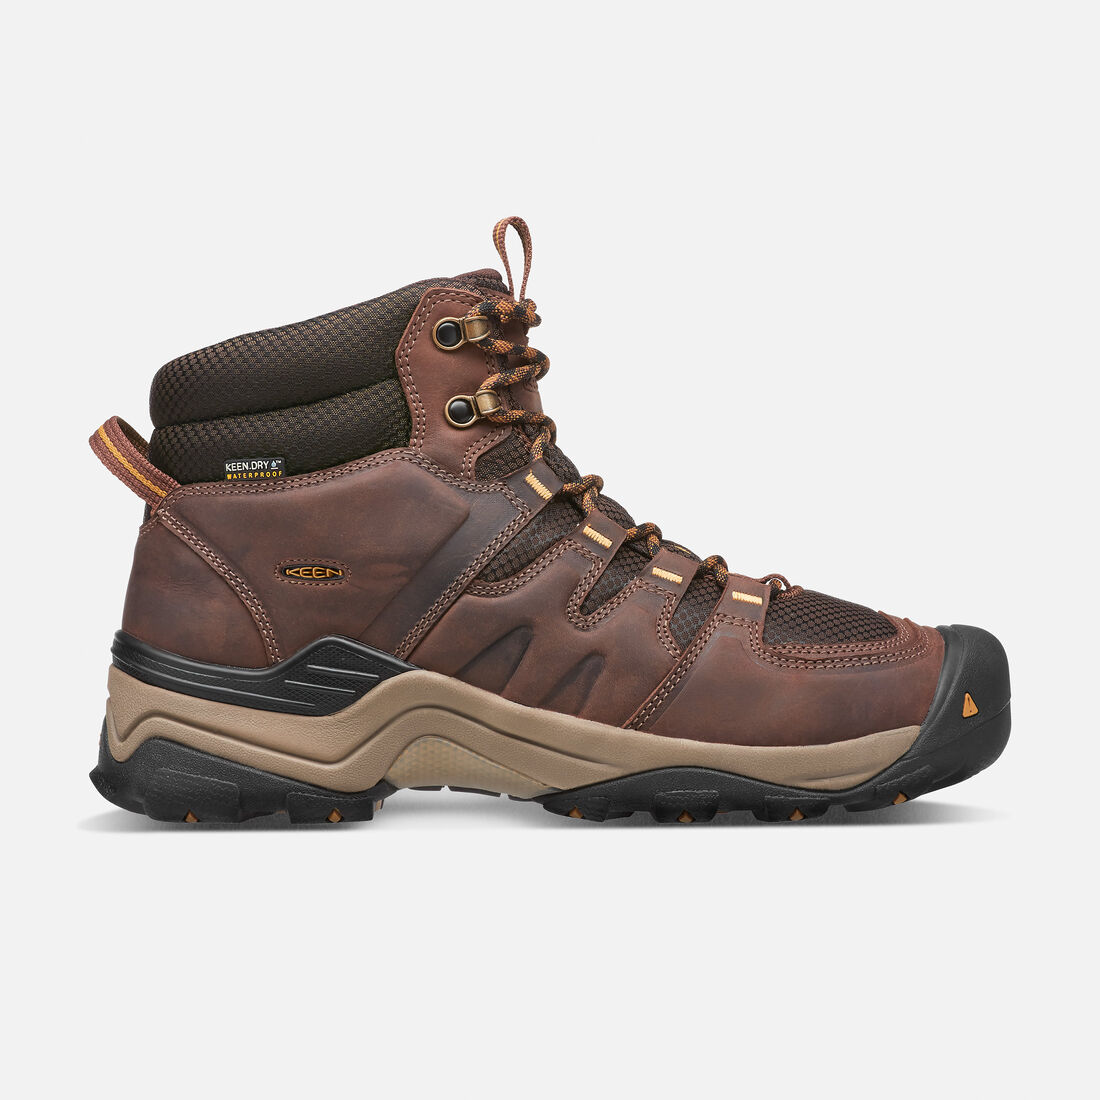 Men's Gypsum II Waterproof Boot in Coffee Bean/Bronze Mist - large view.